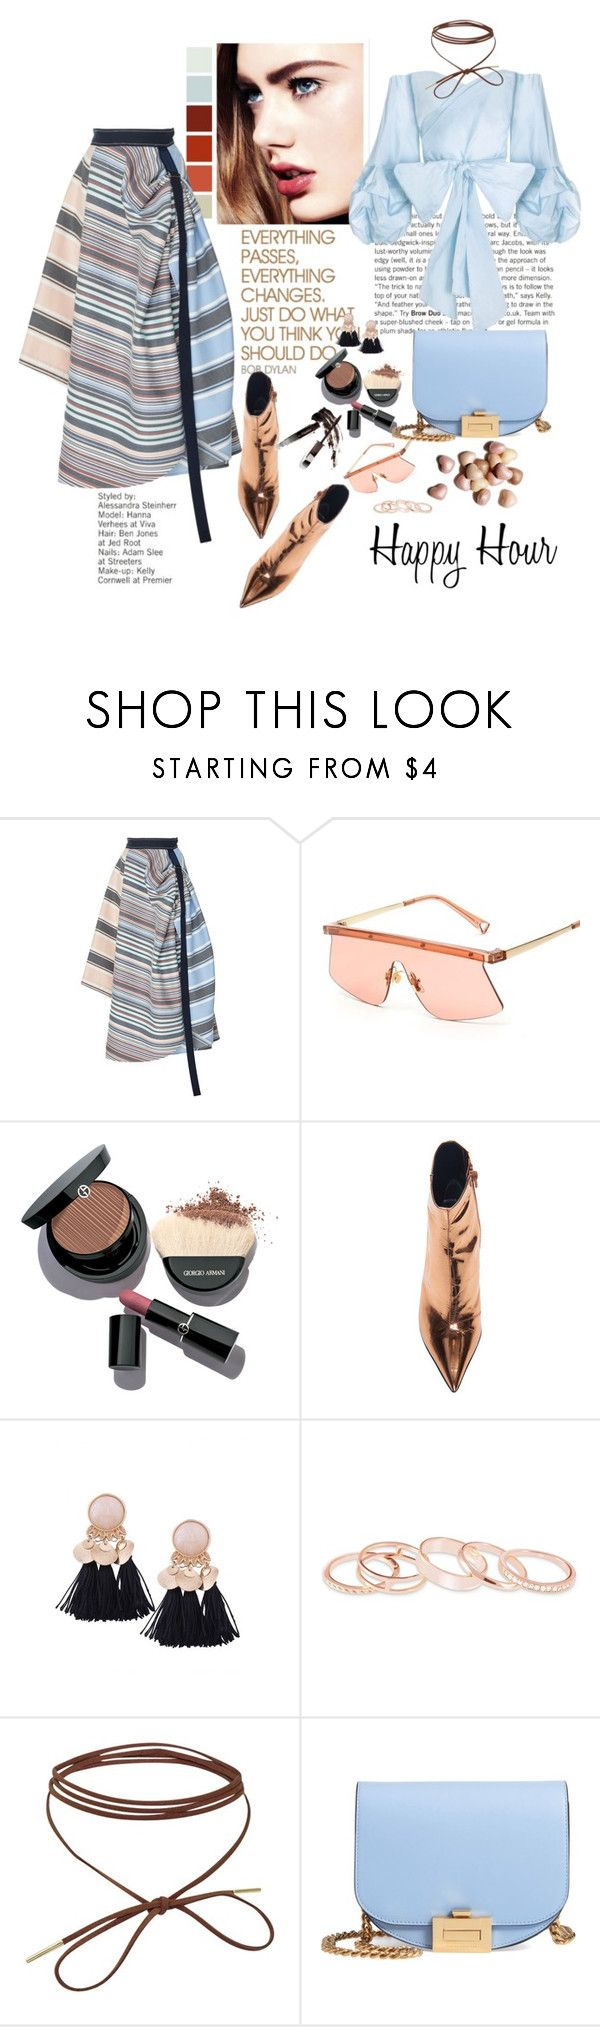 """Başlıksız #1327"" by caramelmedusa ❤ liked on Polyvore featuring Seed Design, Sportmax, Hard Graft, Bobbi Brown Cosmetics, Giorgio Armani, Haider Ackermann, Kendra Scott and Victoria Beckham"